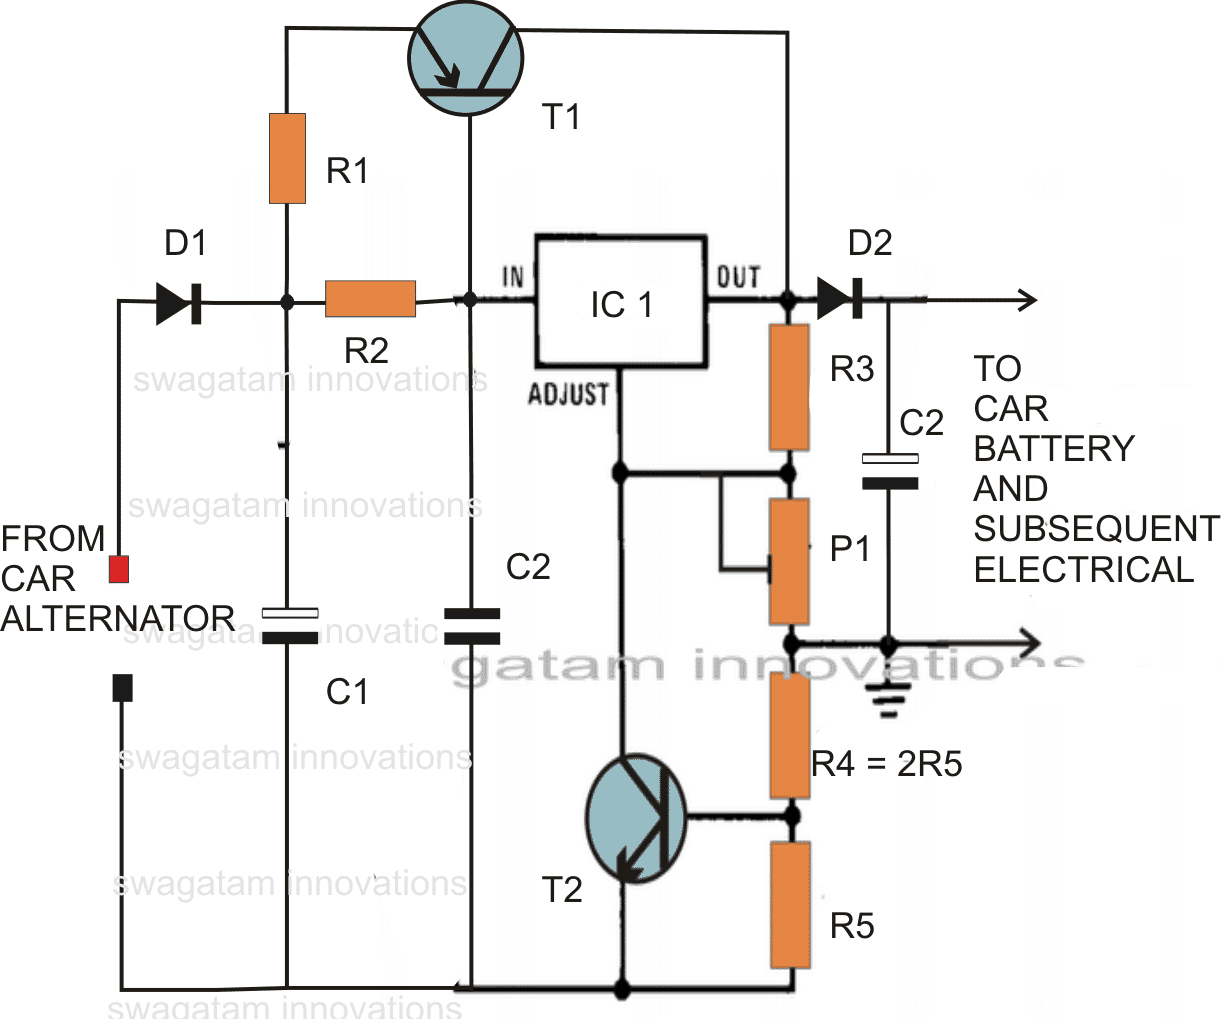 casatte car circuit diagram car circuit diagram ic l9302 go look importantbook: cut out automotive traditional and ...